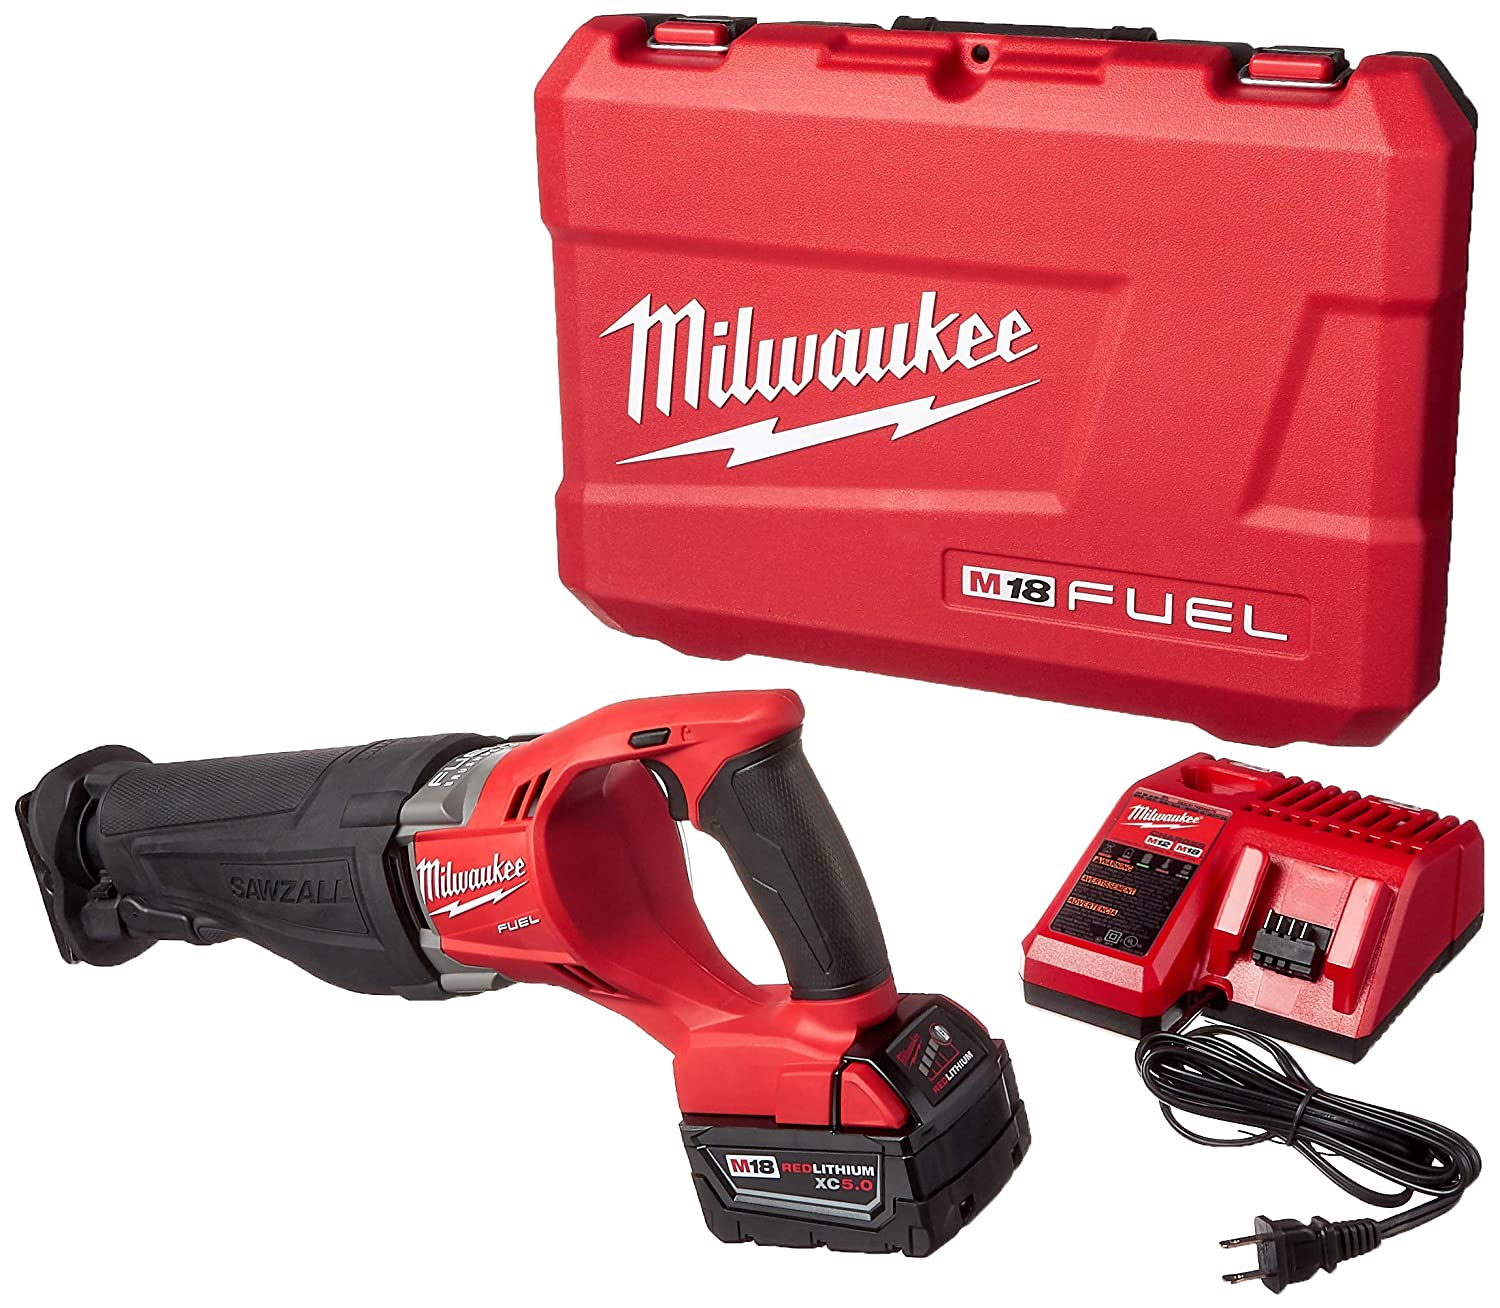 Milwaukee 2720-21 M18 Fuel Sawzall Reciprocating Saw Kit